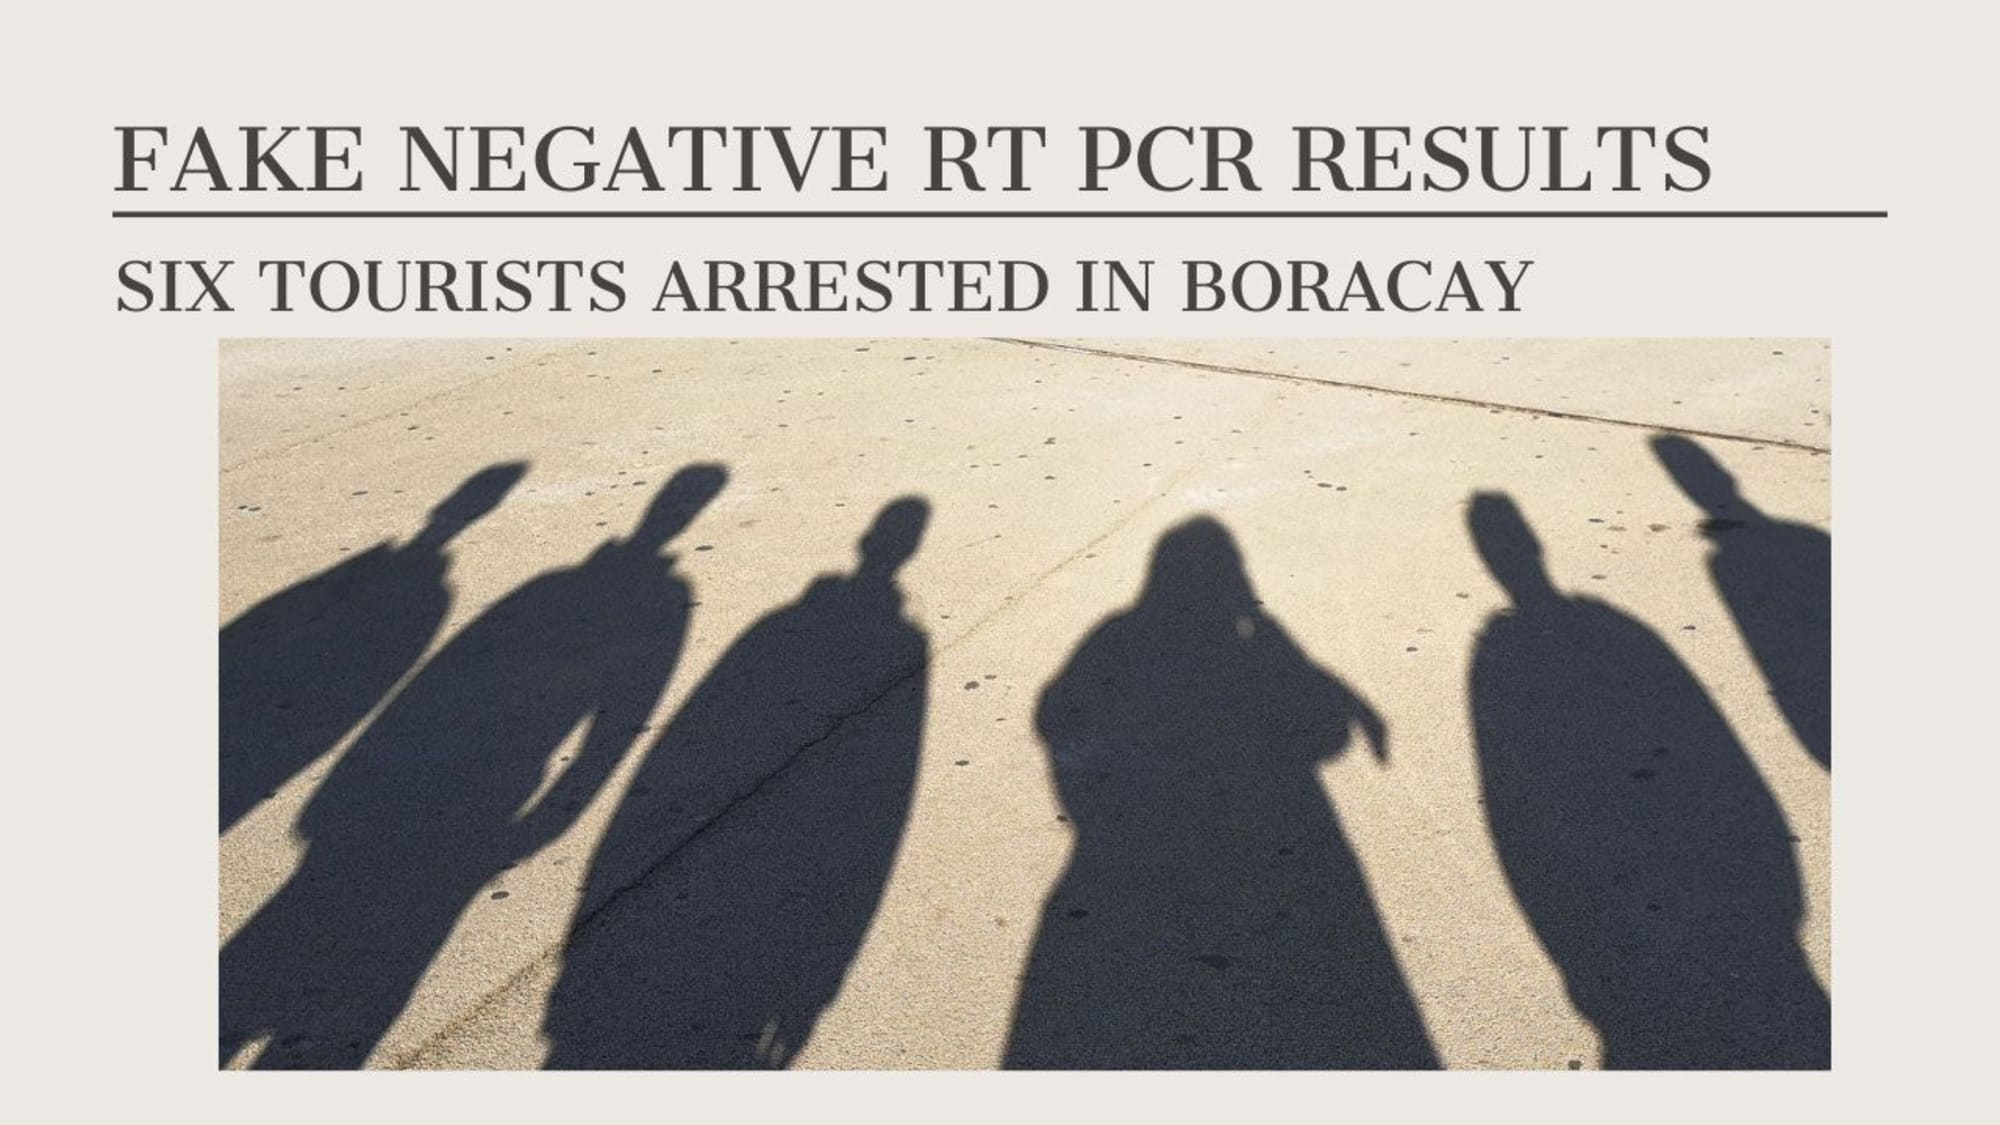 6 tourists in Boracay were arrested, because of Fake Negative RT PCR Results